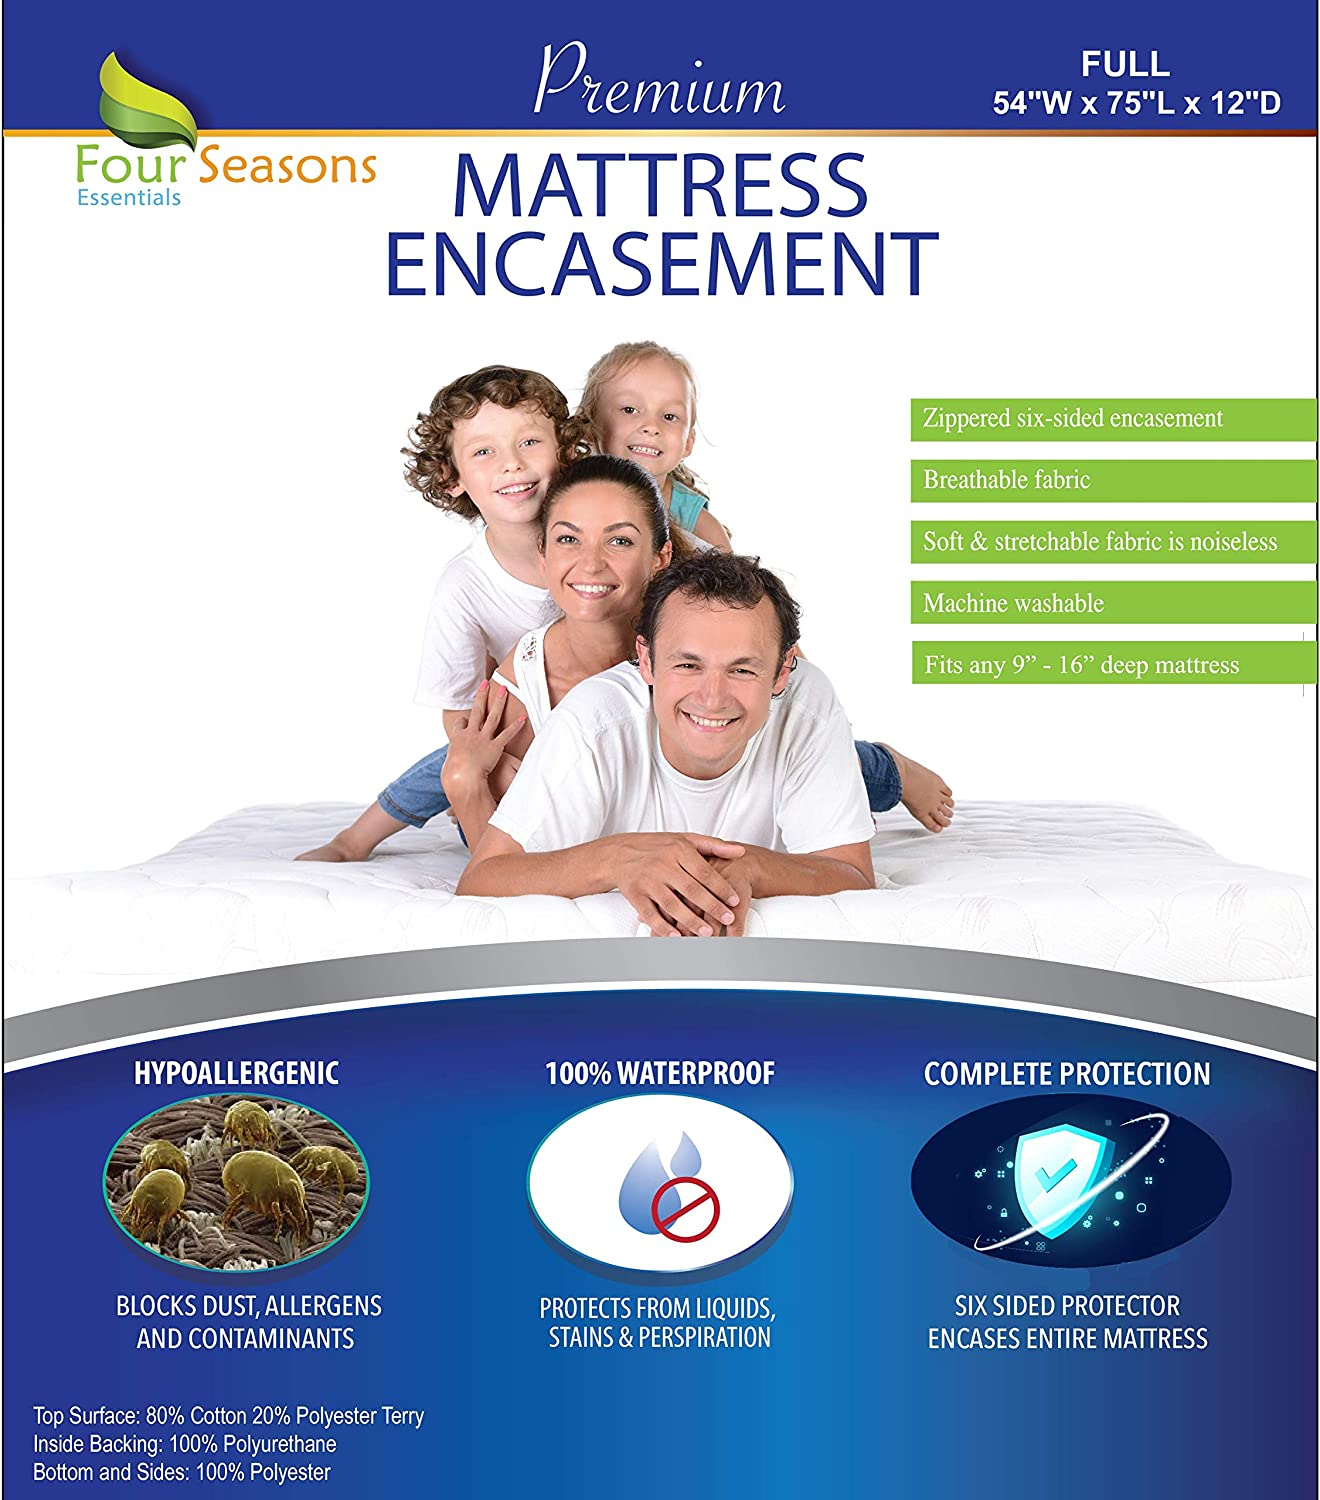 Four Seasons Essentials Full Size Zippered Mattress Protector - Waterproof Mattress Cover - Hypoallergenic Allergy Proof Bed Encasement - Deep Pocket Cotton Terry Top